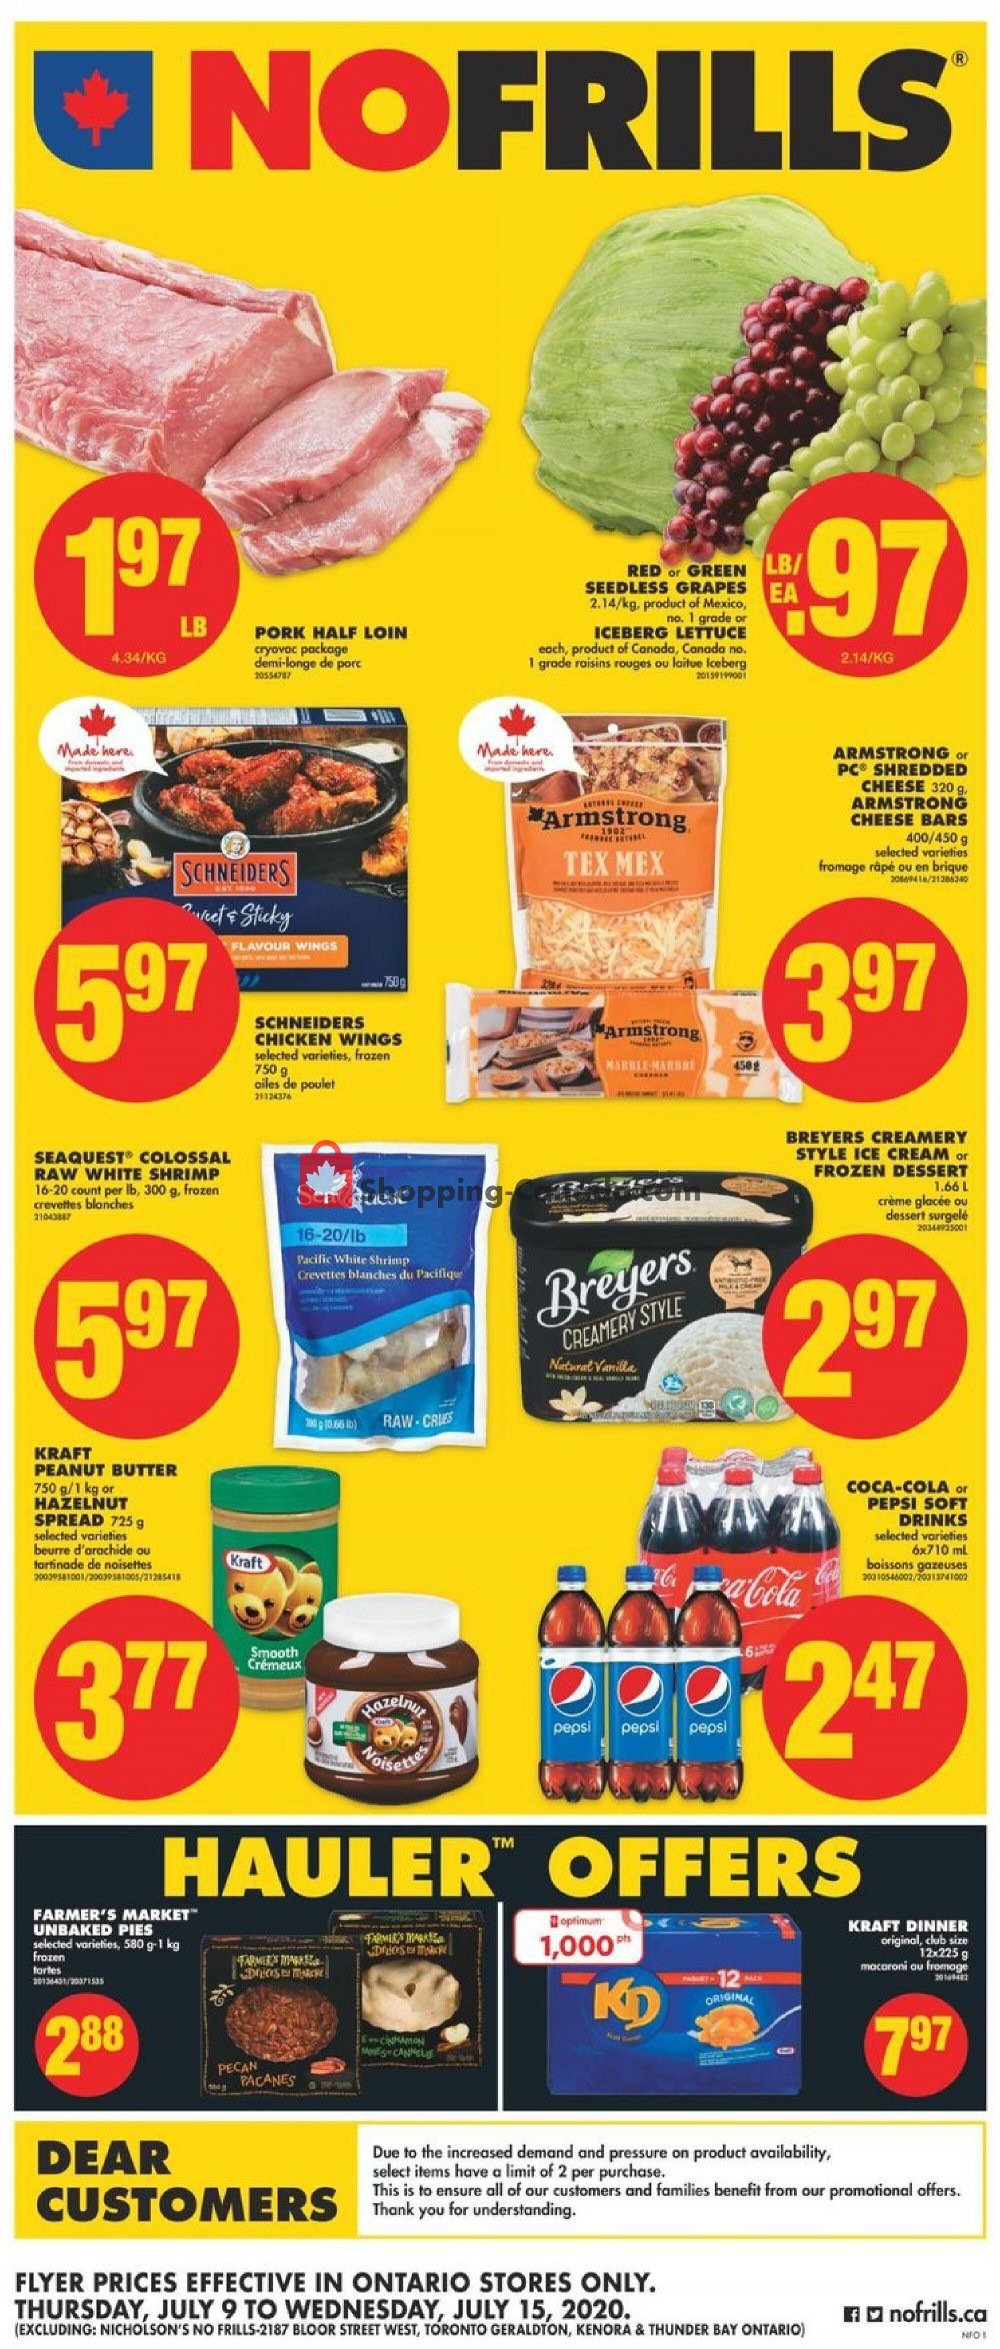 Flyer No Frills Canada - from Thursday July 9, 2020 to Wednesday July 15, 2020